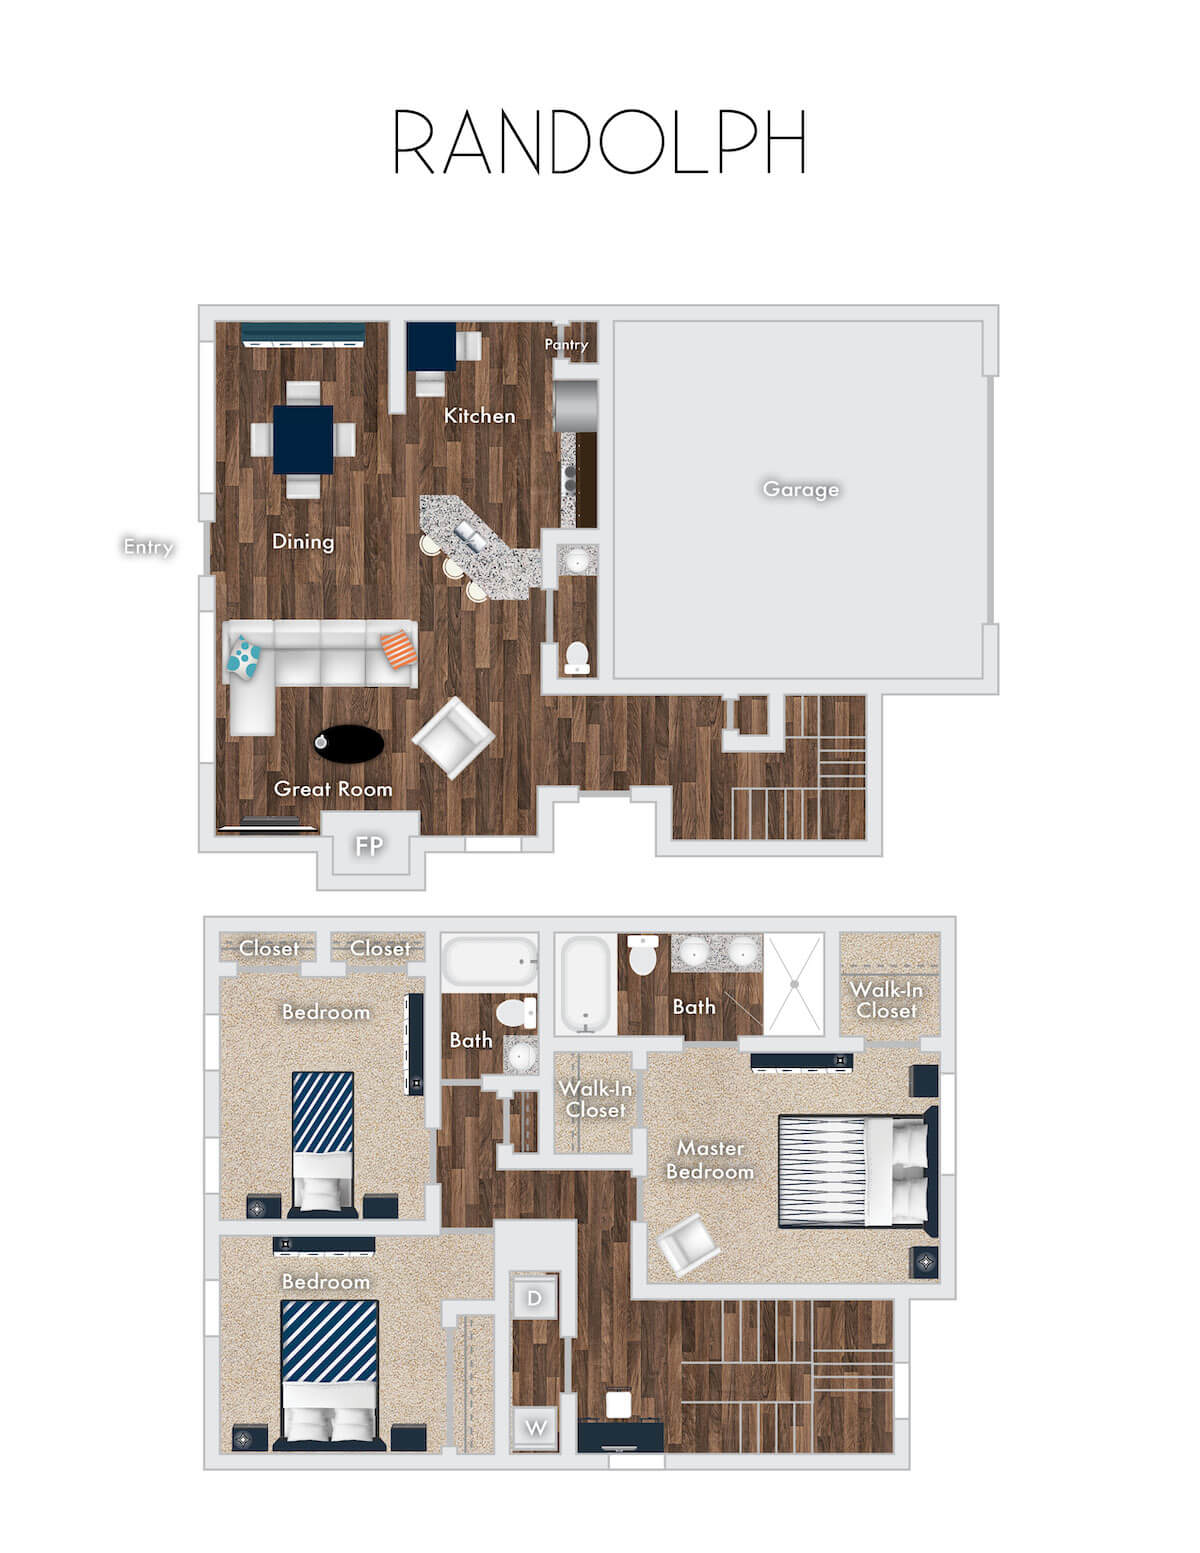 Randolph floor plan, 2 Story, 3 Bedrooms, 2 Baths, with 2 Car Garage